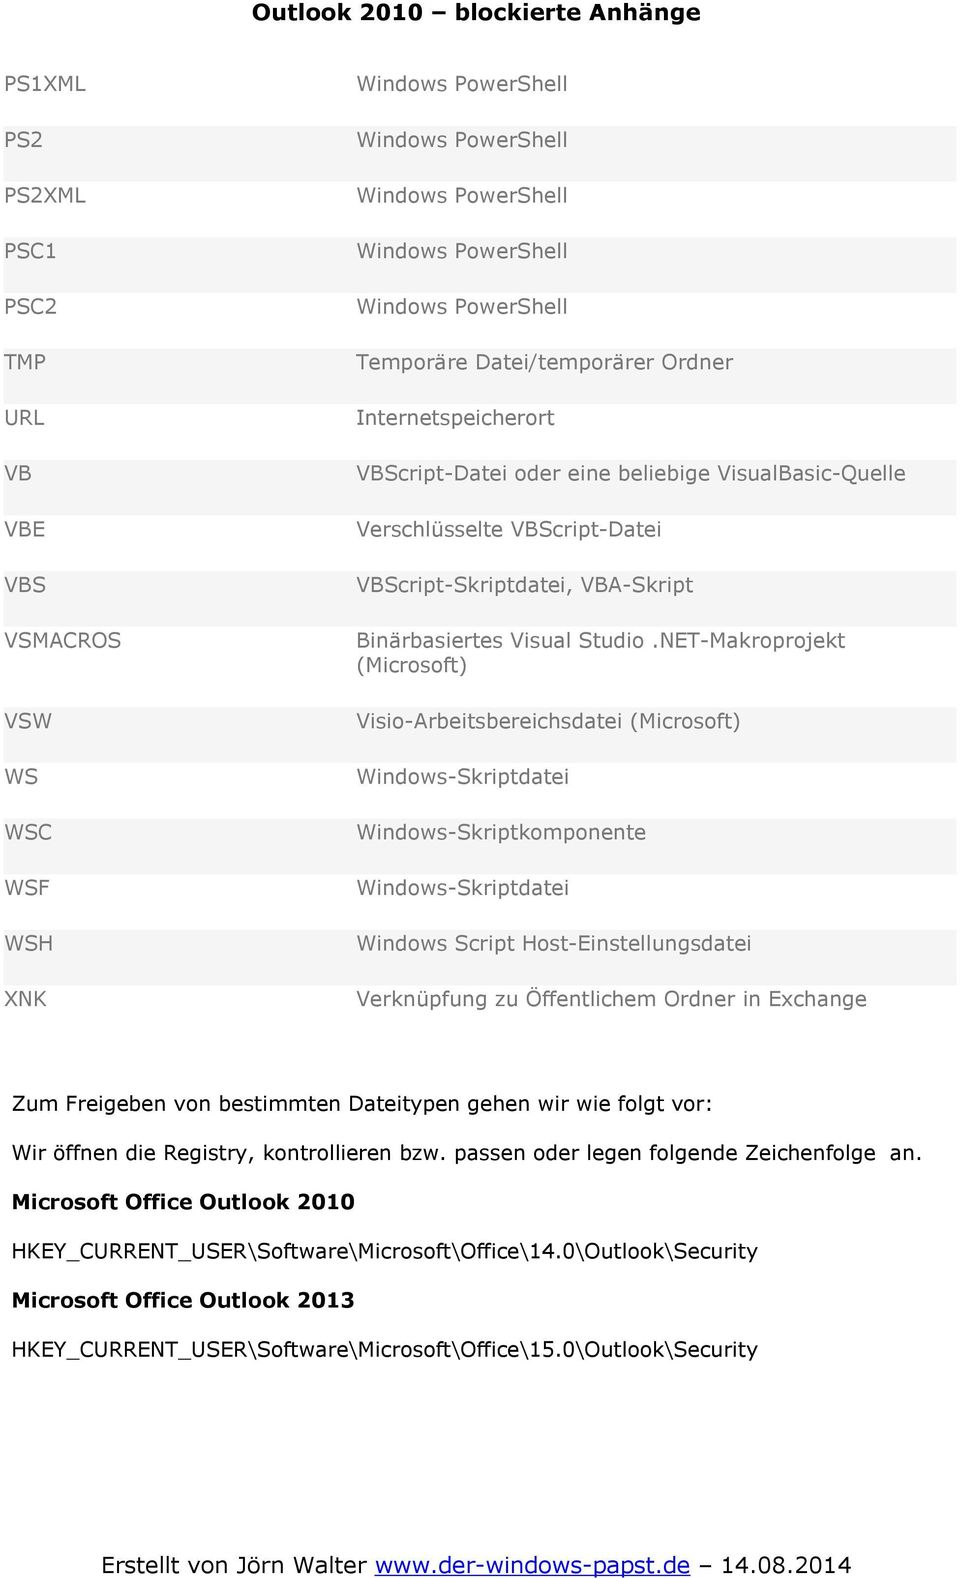 NET-Makroprojekt Visio-Arbeitsbereichsdatei Windows-Skriptdatei Windows-Skriptkomponente Windows-Skriptdatei Windows Script Host-Einstellungsdatei Verknüpfung zu Öffentlichem Ordner in Exchange Zum